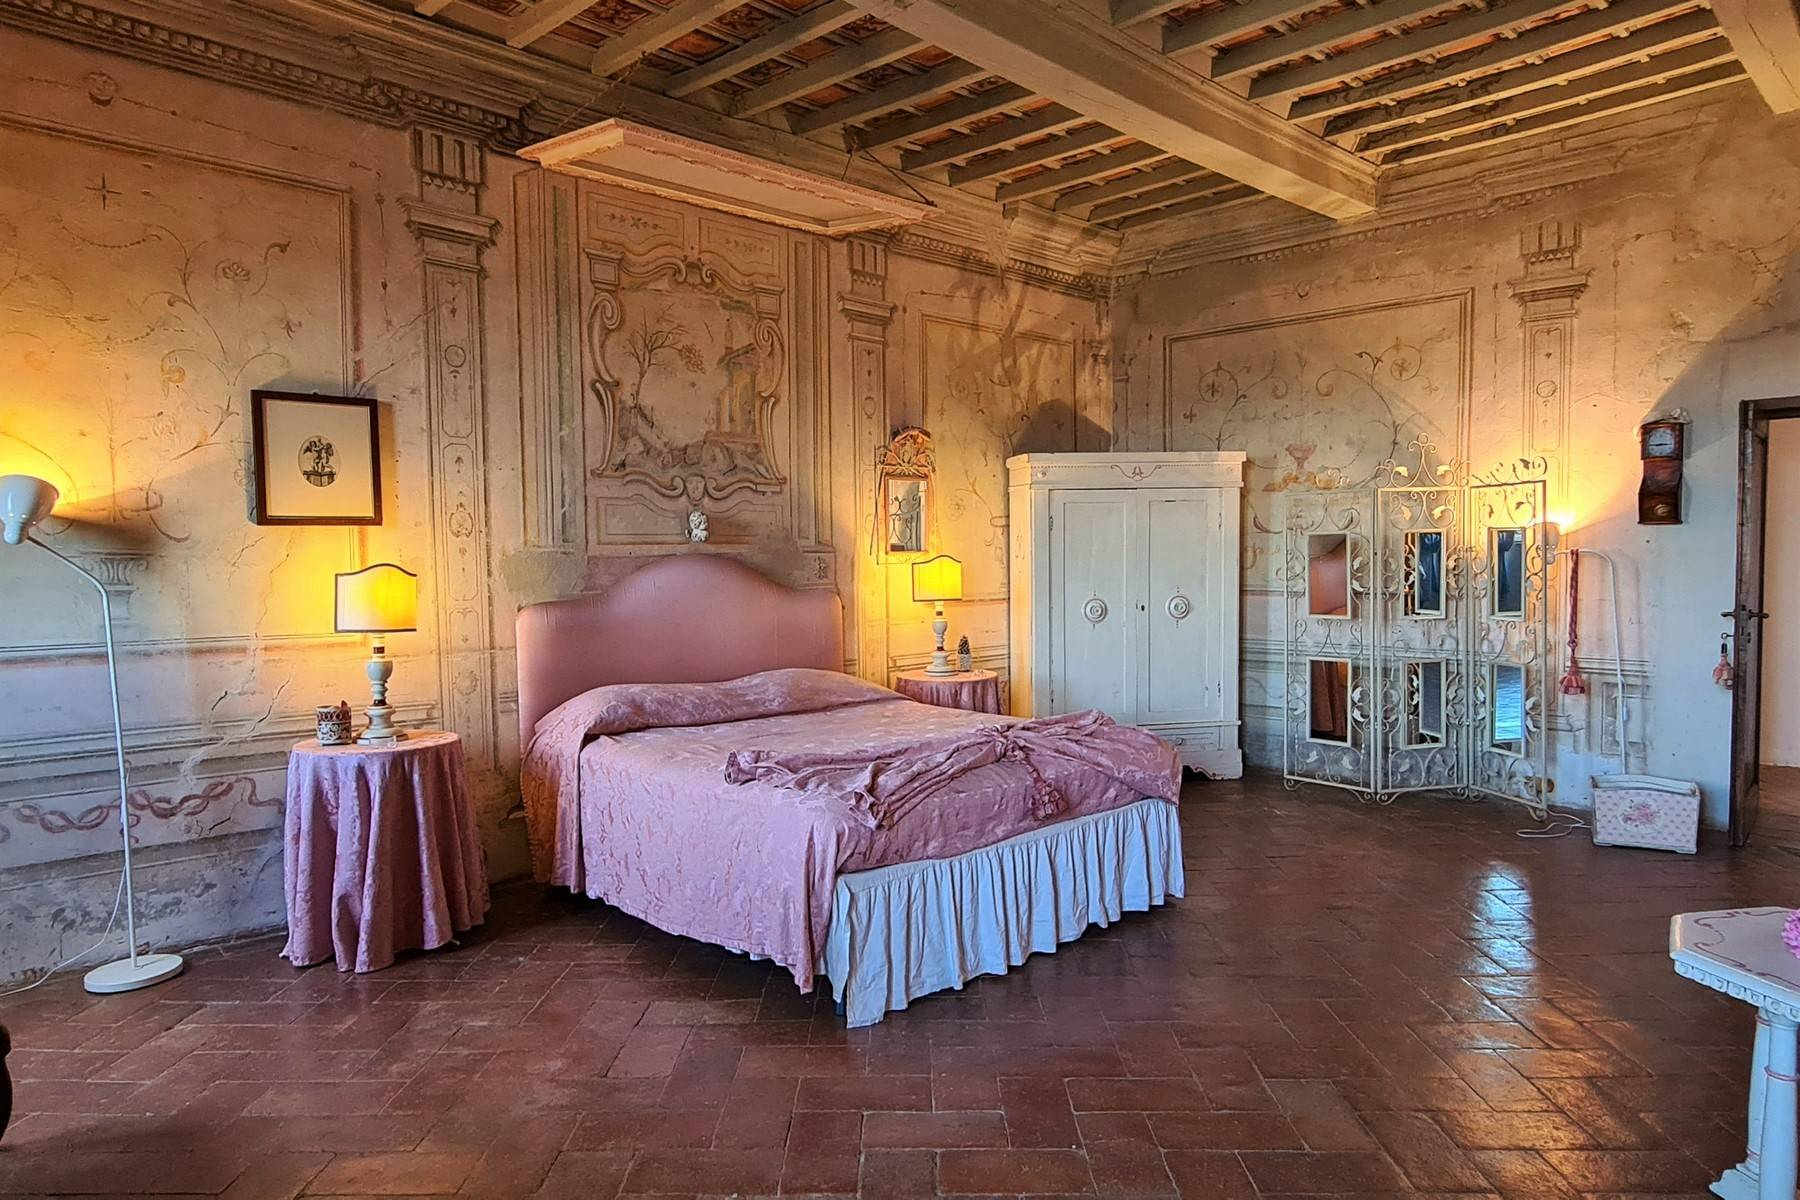 Enchanting historical villa in the heart of Chianti - 18